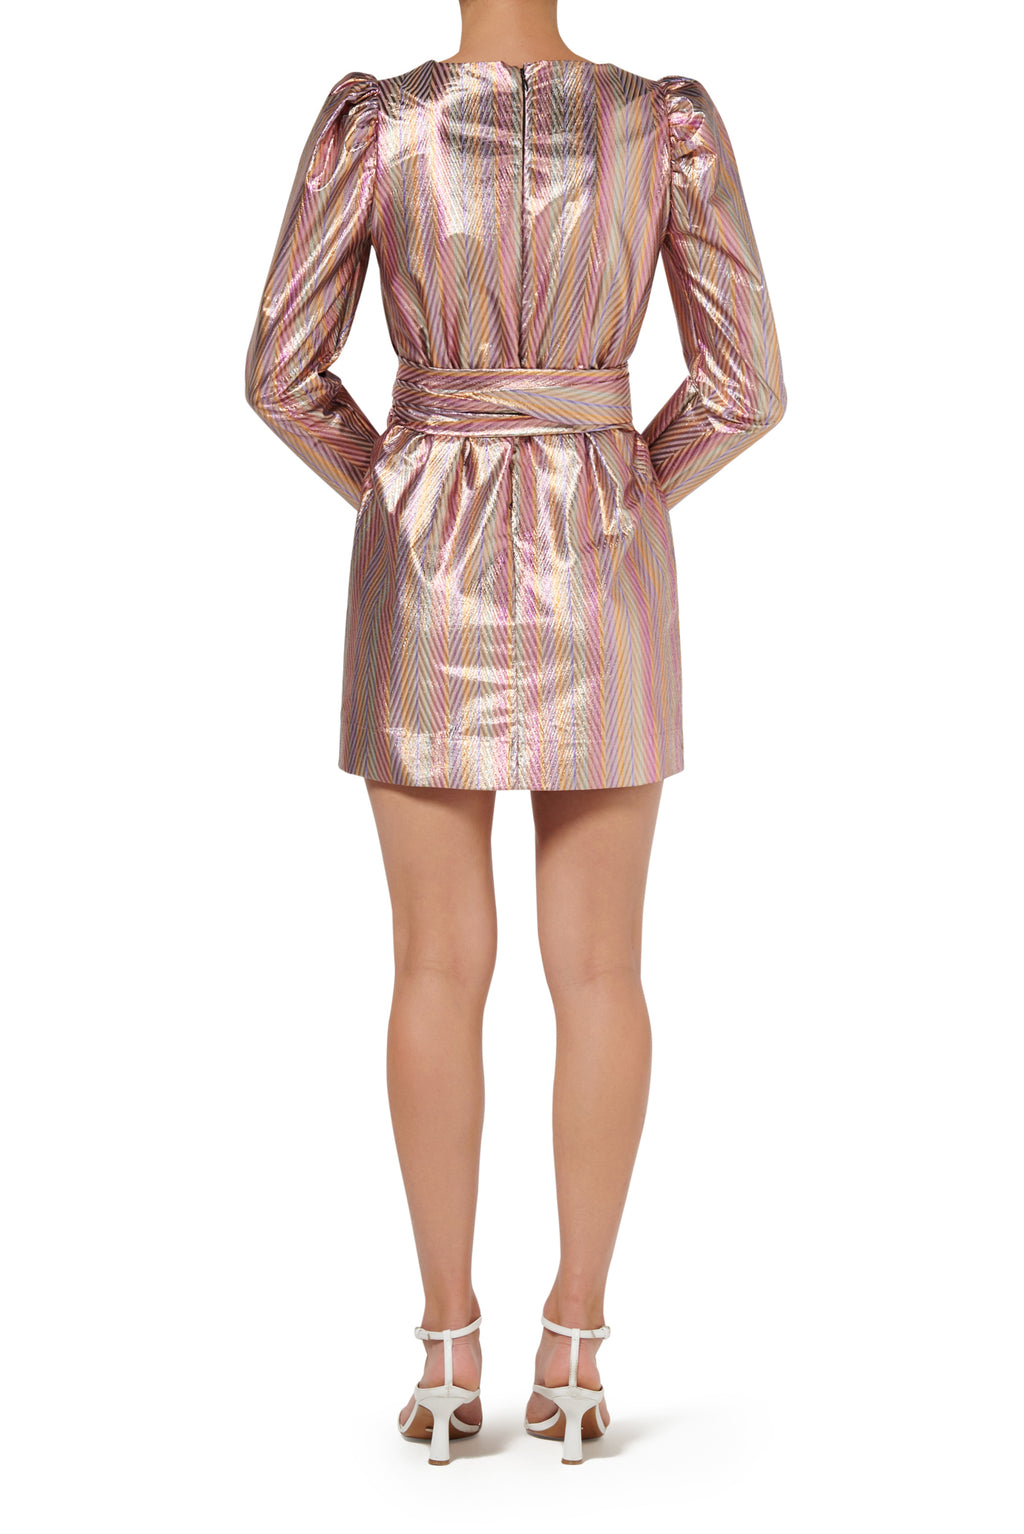 Clio Mini Dress - Metallic Stripe